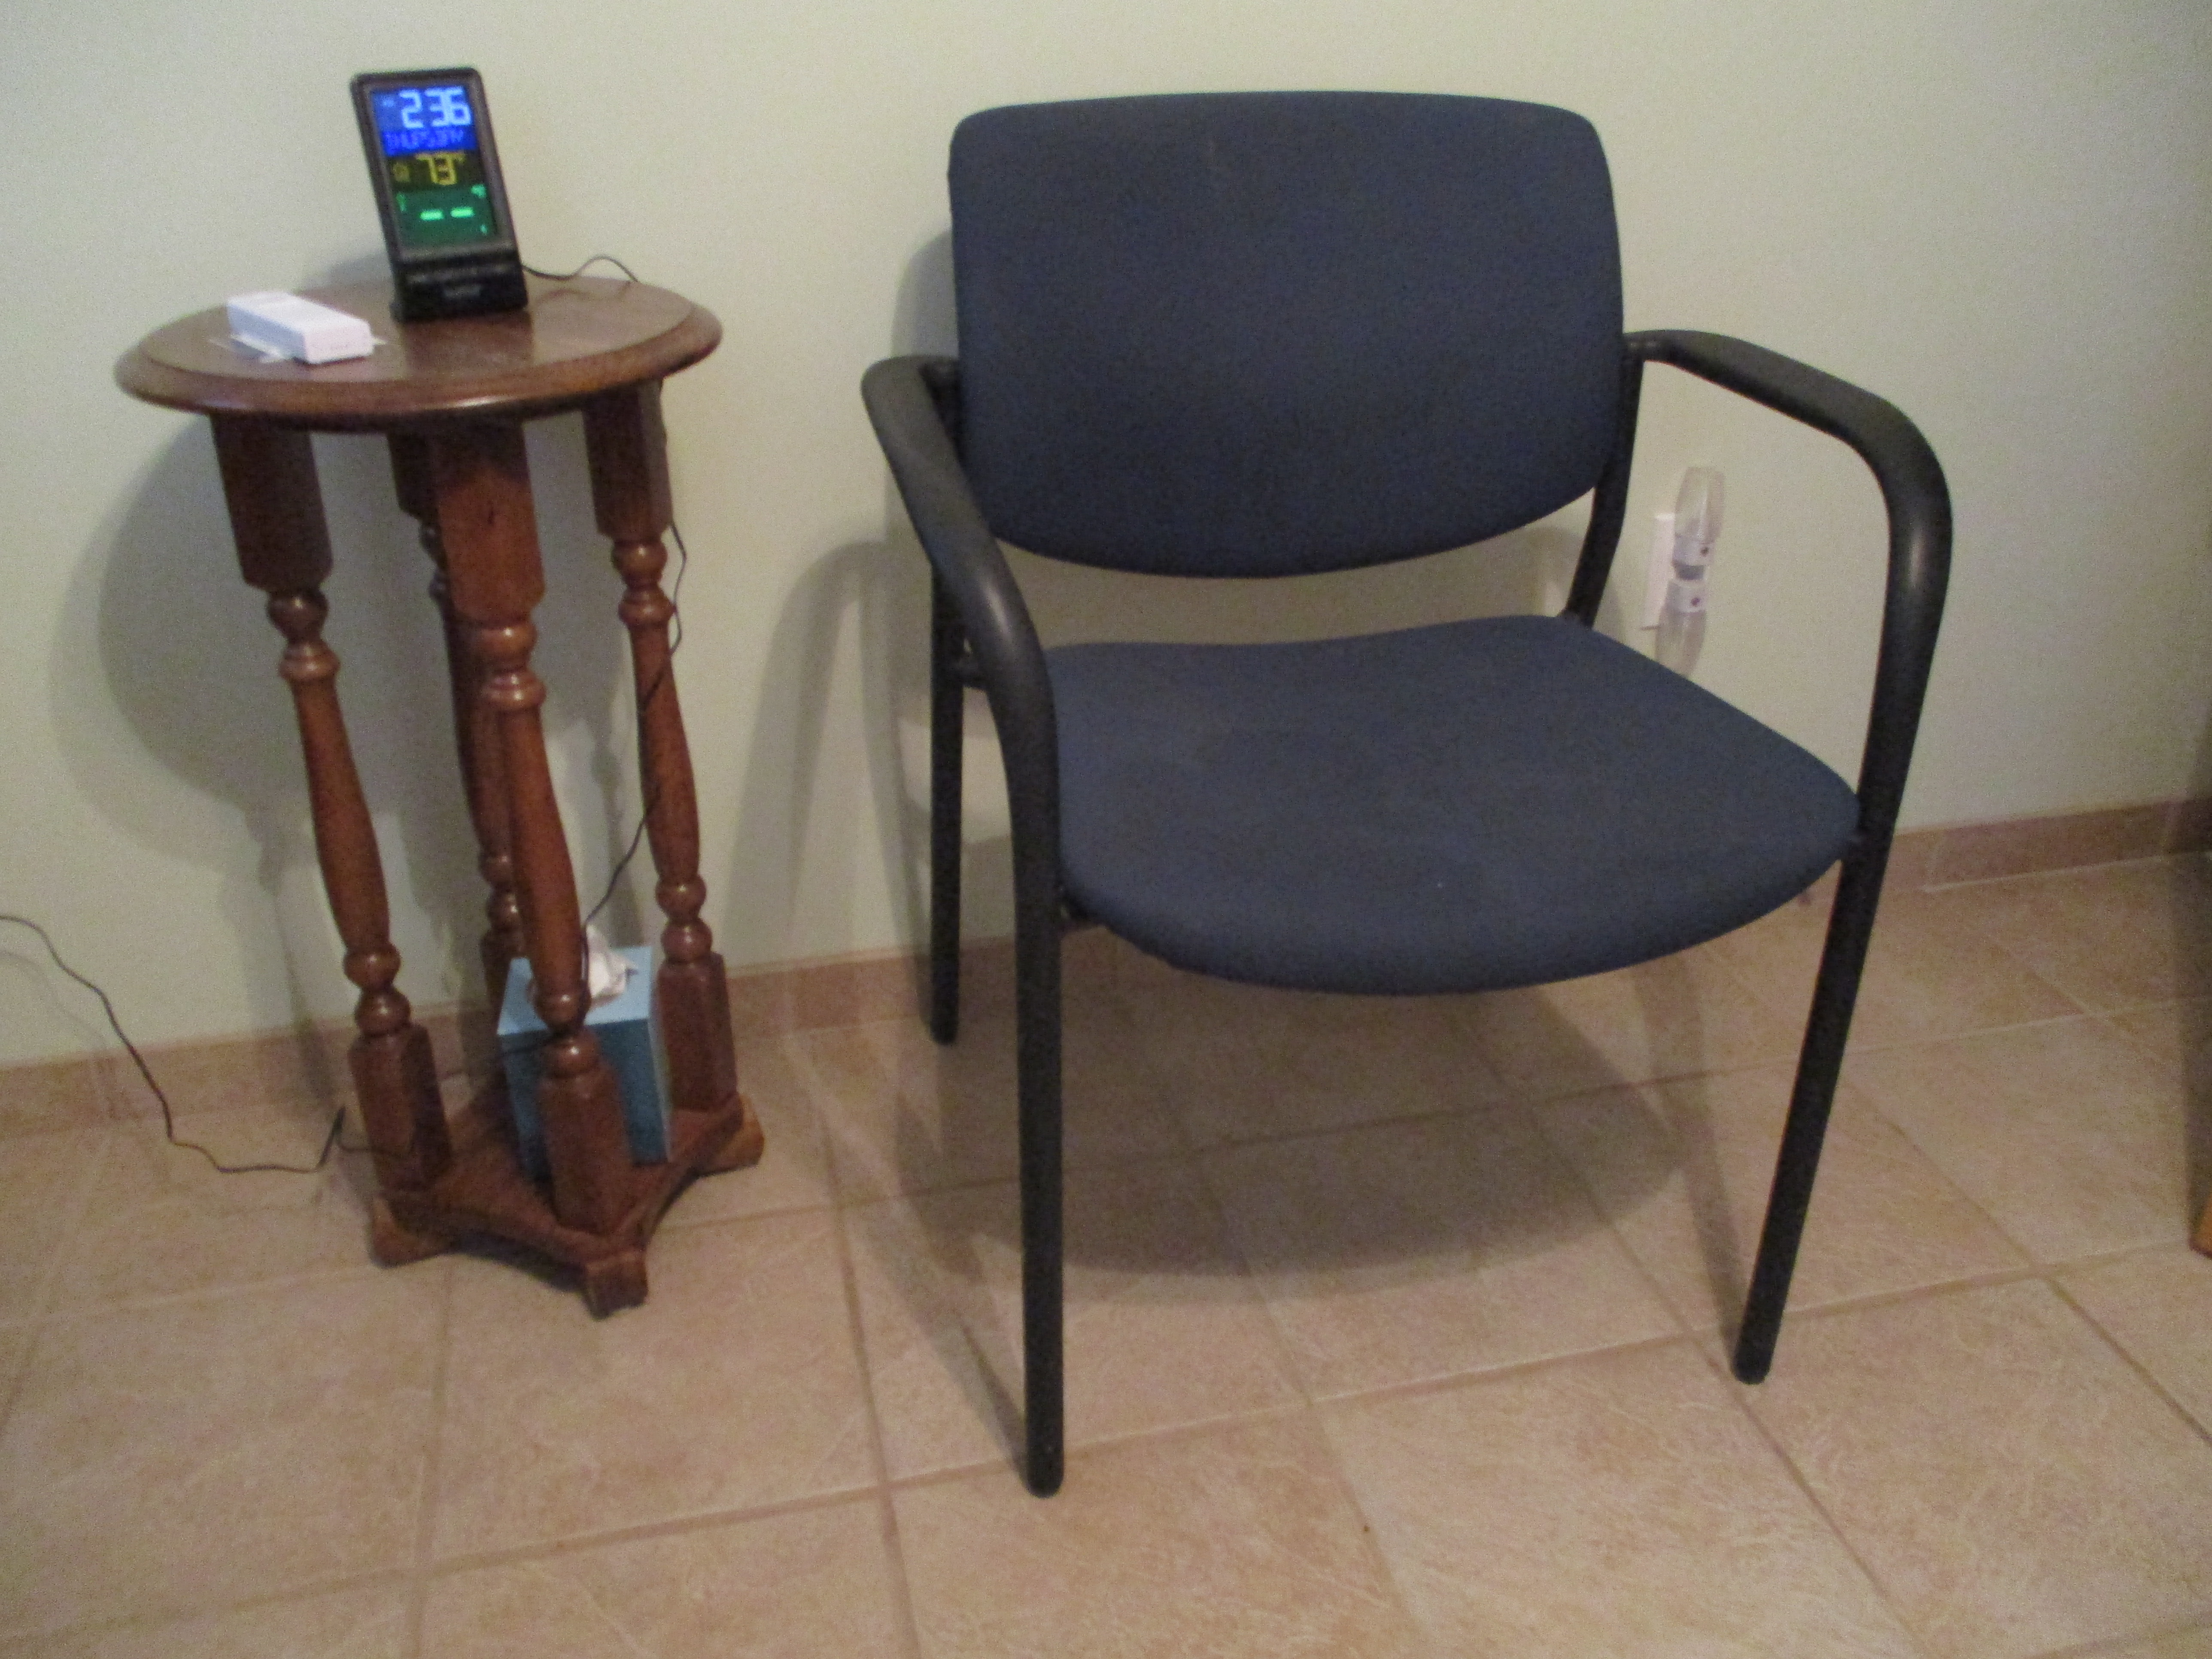 new clock and chair.JPG